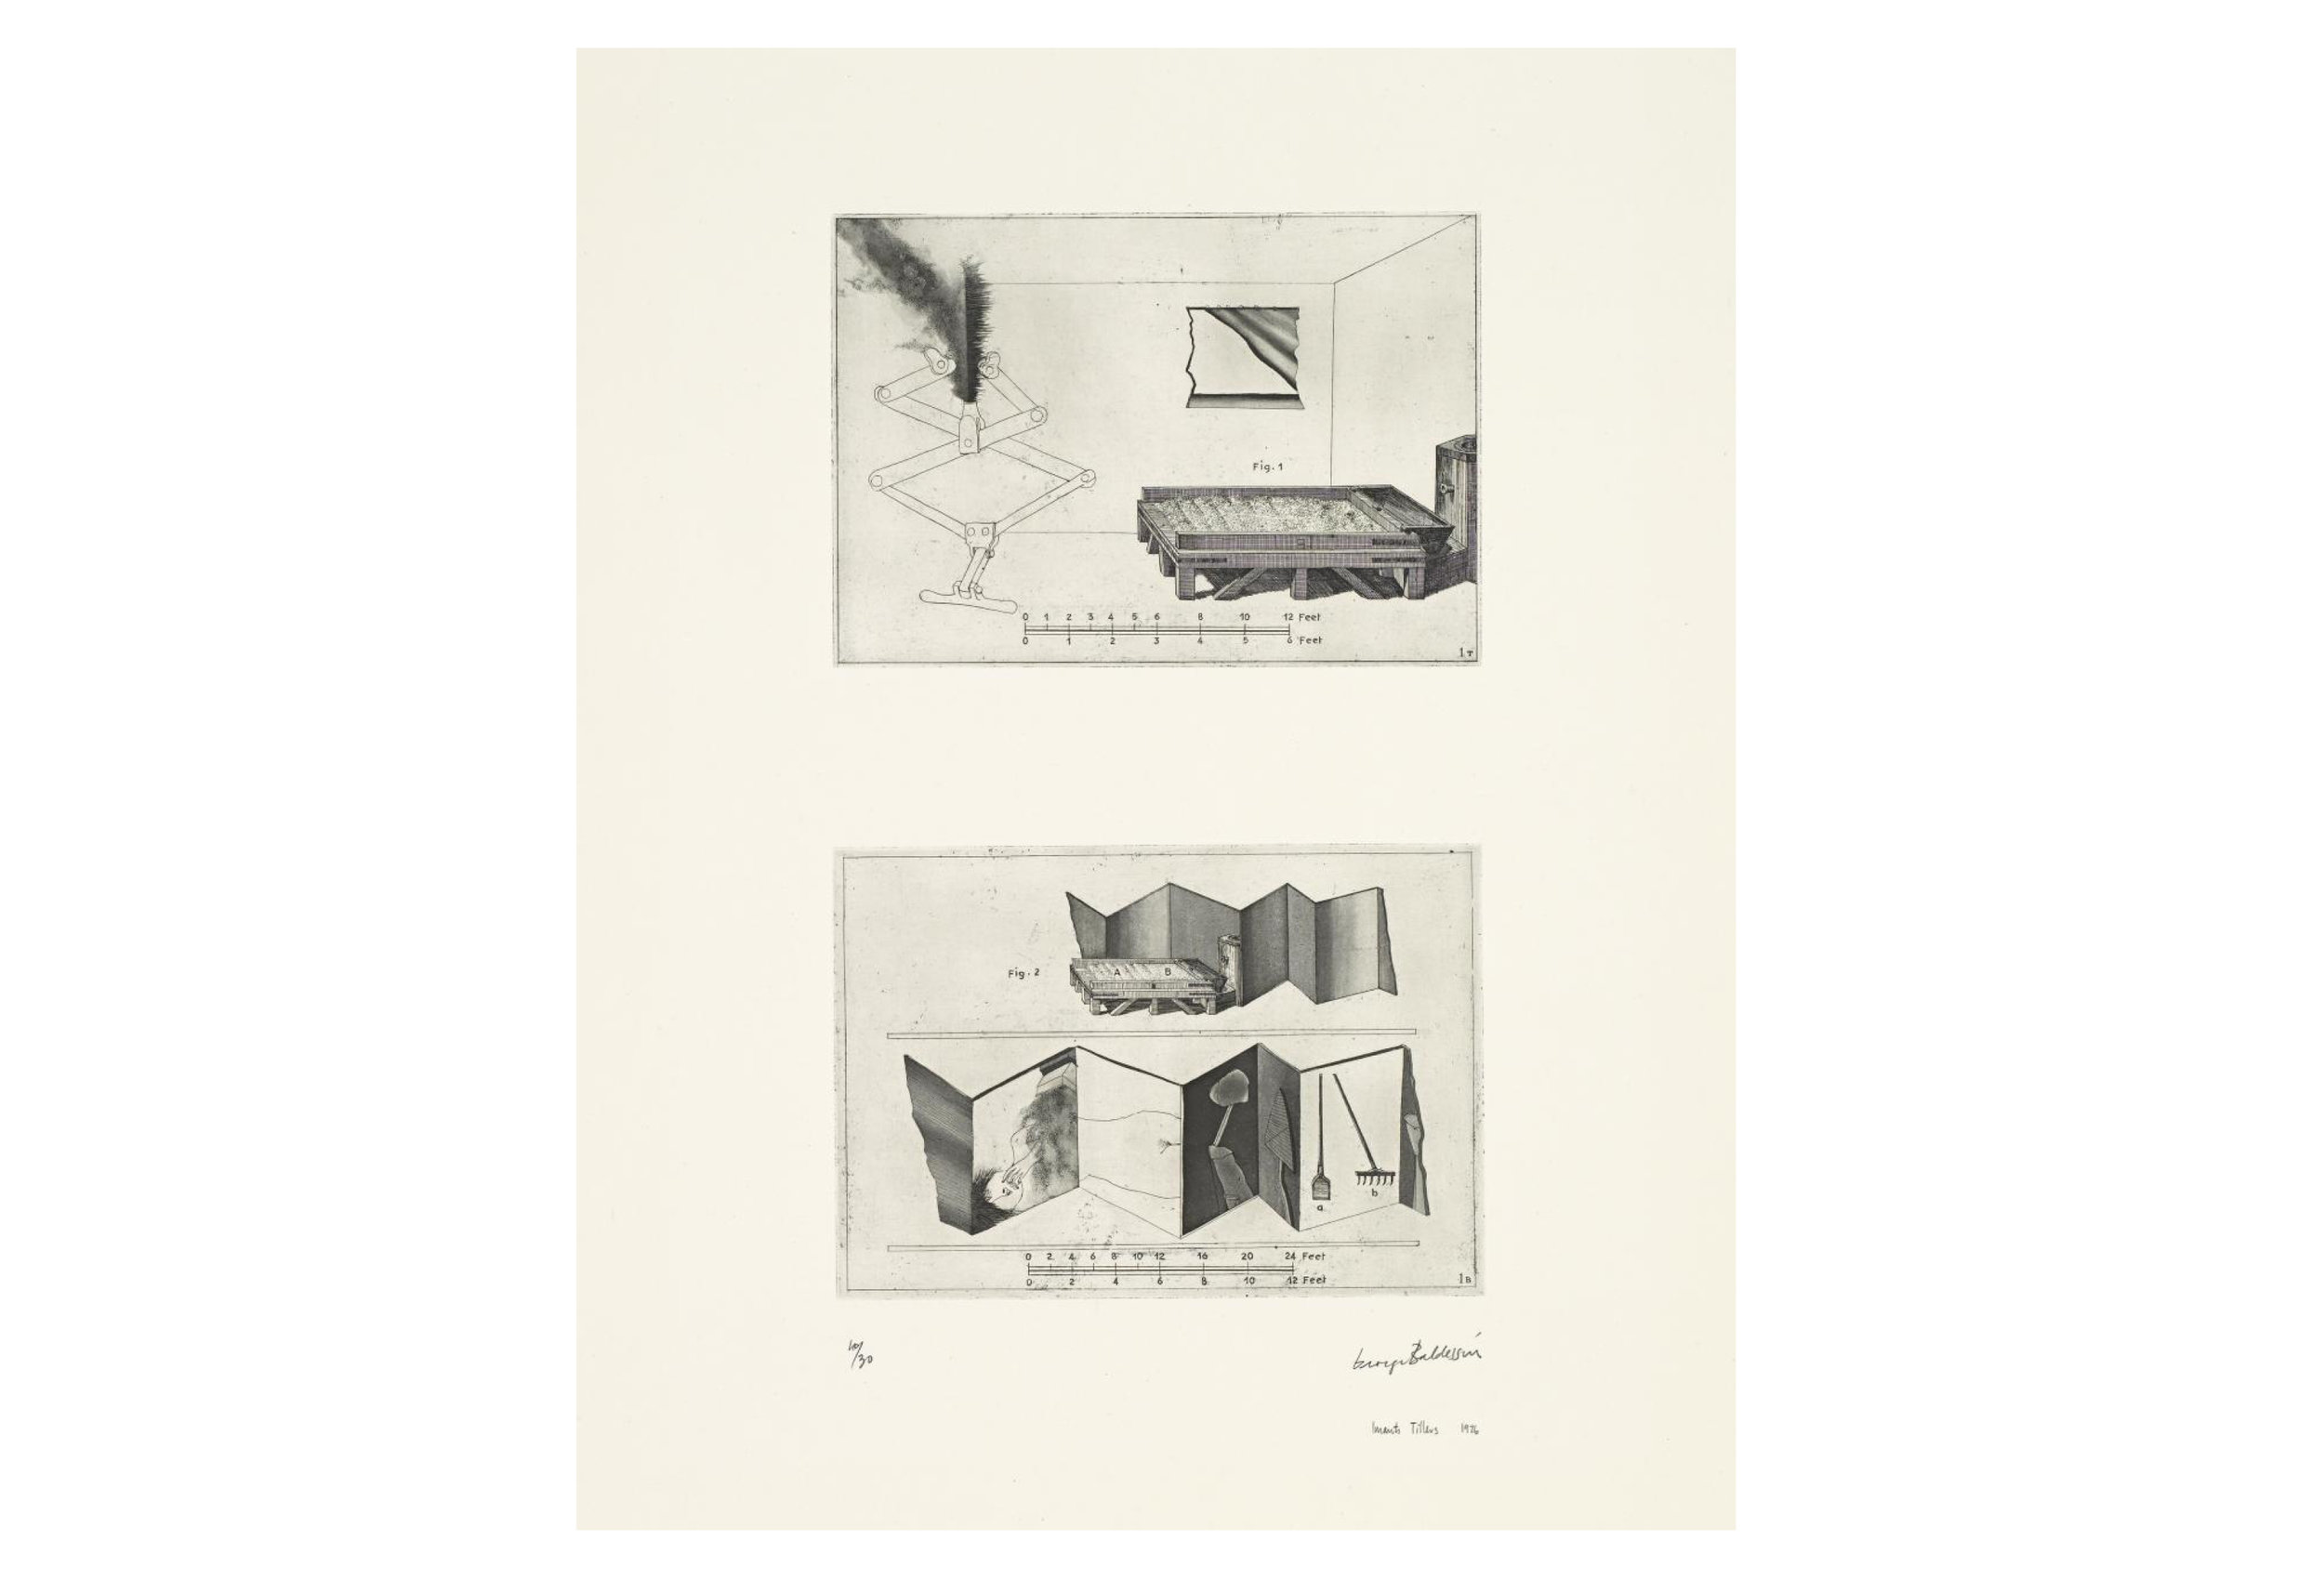 Imants Tillers and George Baldessin   According to Des Esseintes 1 , 1976  from the suite According to Des Esseintes etching and aquatint on arches paper printed by Pascal Giraudon in Nice, France 18.0 × 25.6 cm (plate) (top) 17.8 × 25.6 cm (plate) (bottom) 42.6 × 25.6 cm (comp.) 64.8 × 50.8 cm (sheet) Collections: National Gallery of Victoria, Melbourne; Art Gallery of New South Wales; National Gallery, Wellington, Queensland Art Gallery, Brisbane, National Gallery of Australia, Canberra